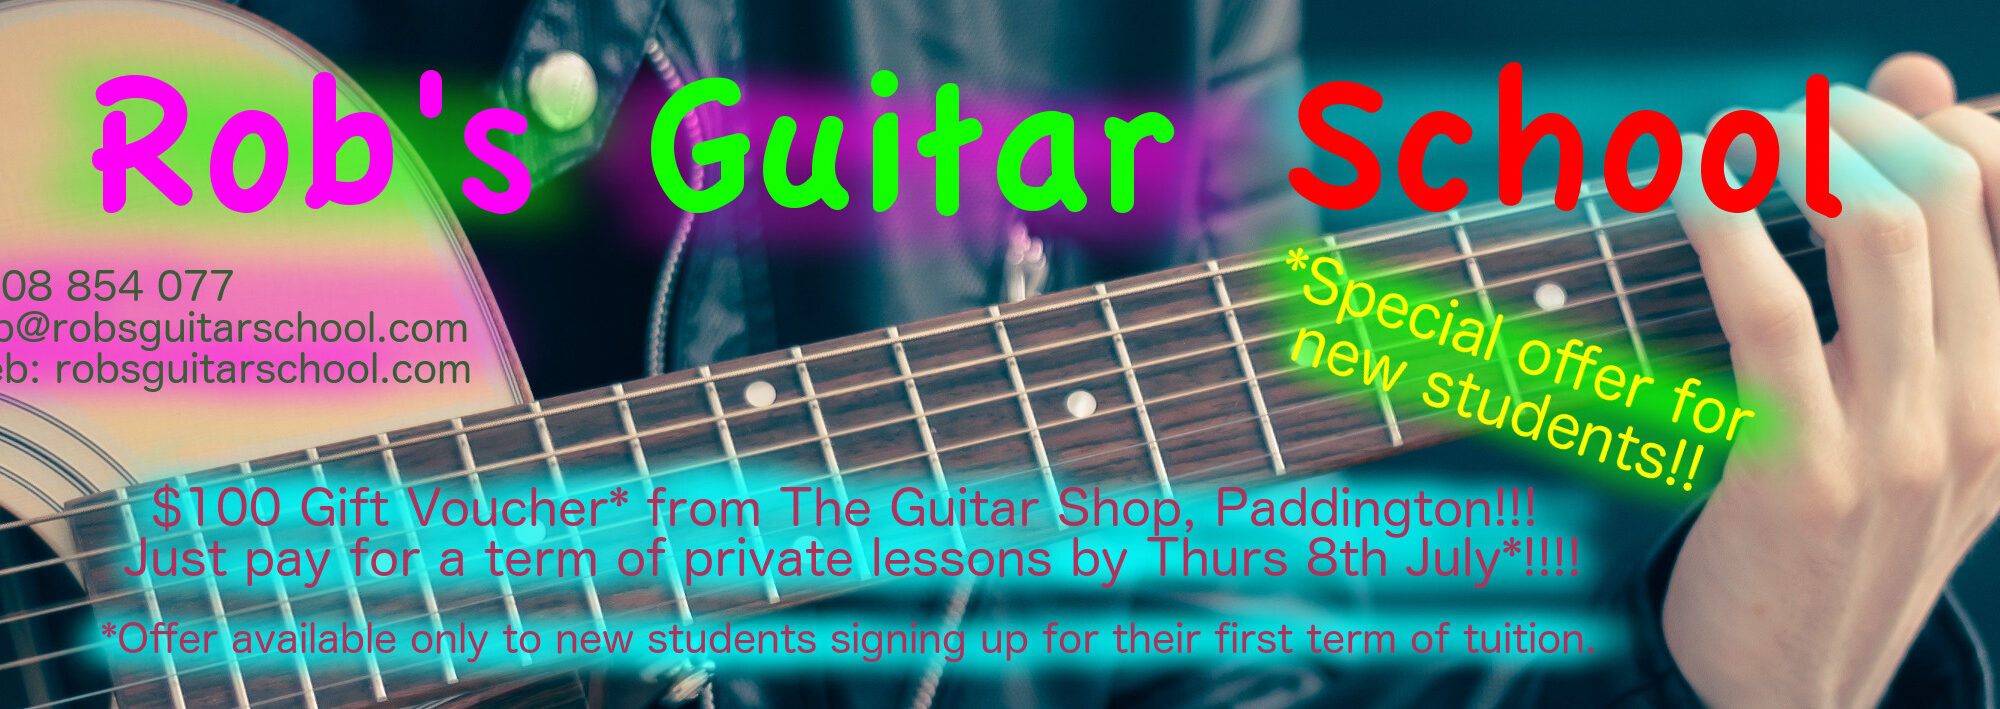 Rob's Guitar school special offer for new students